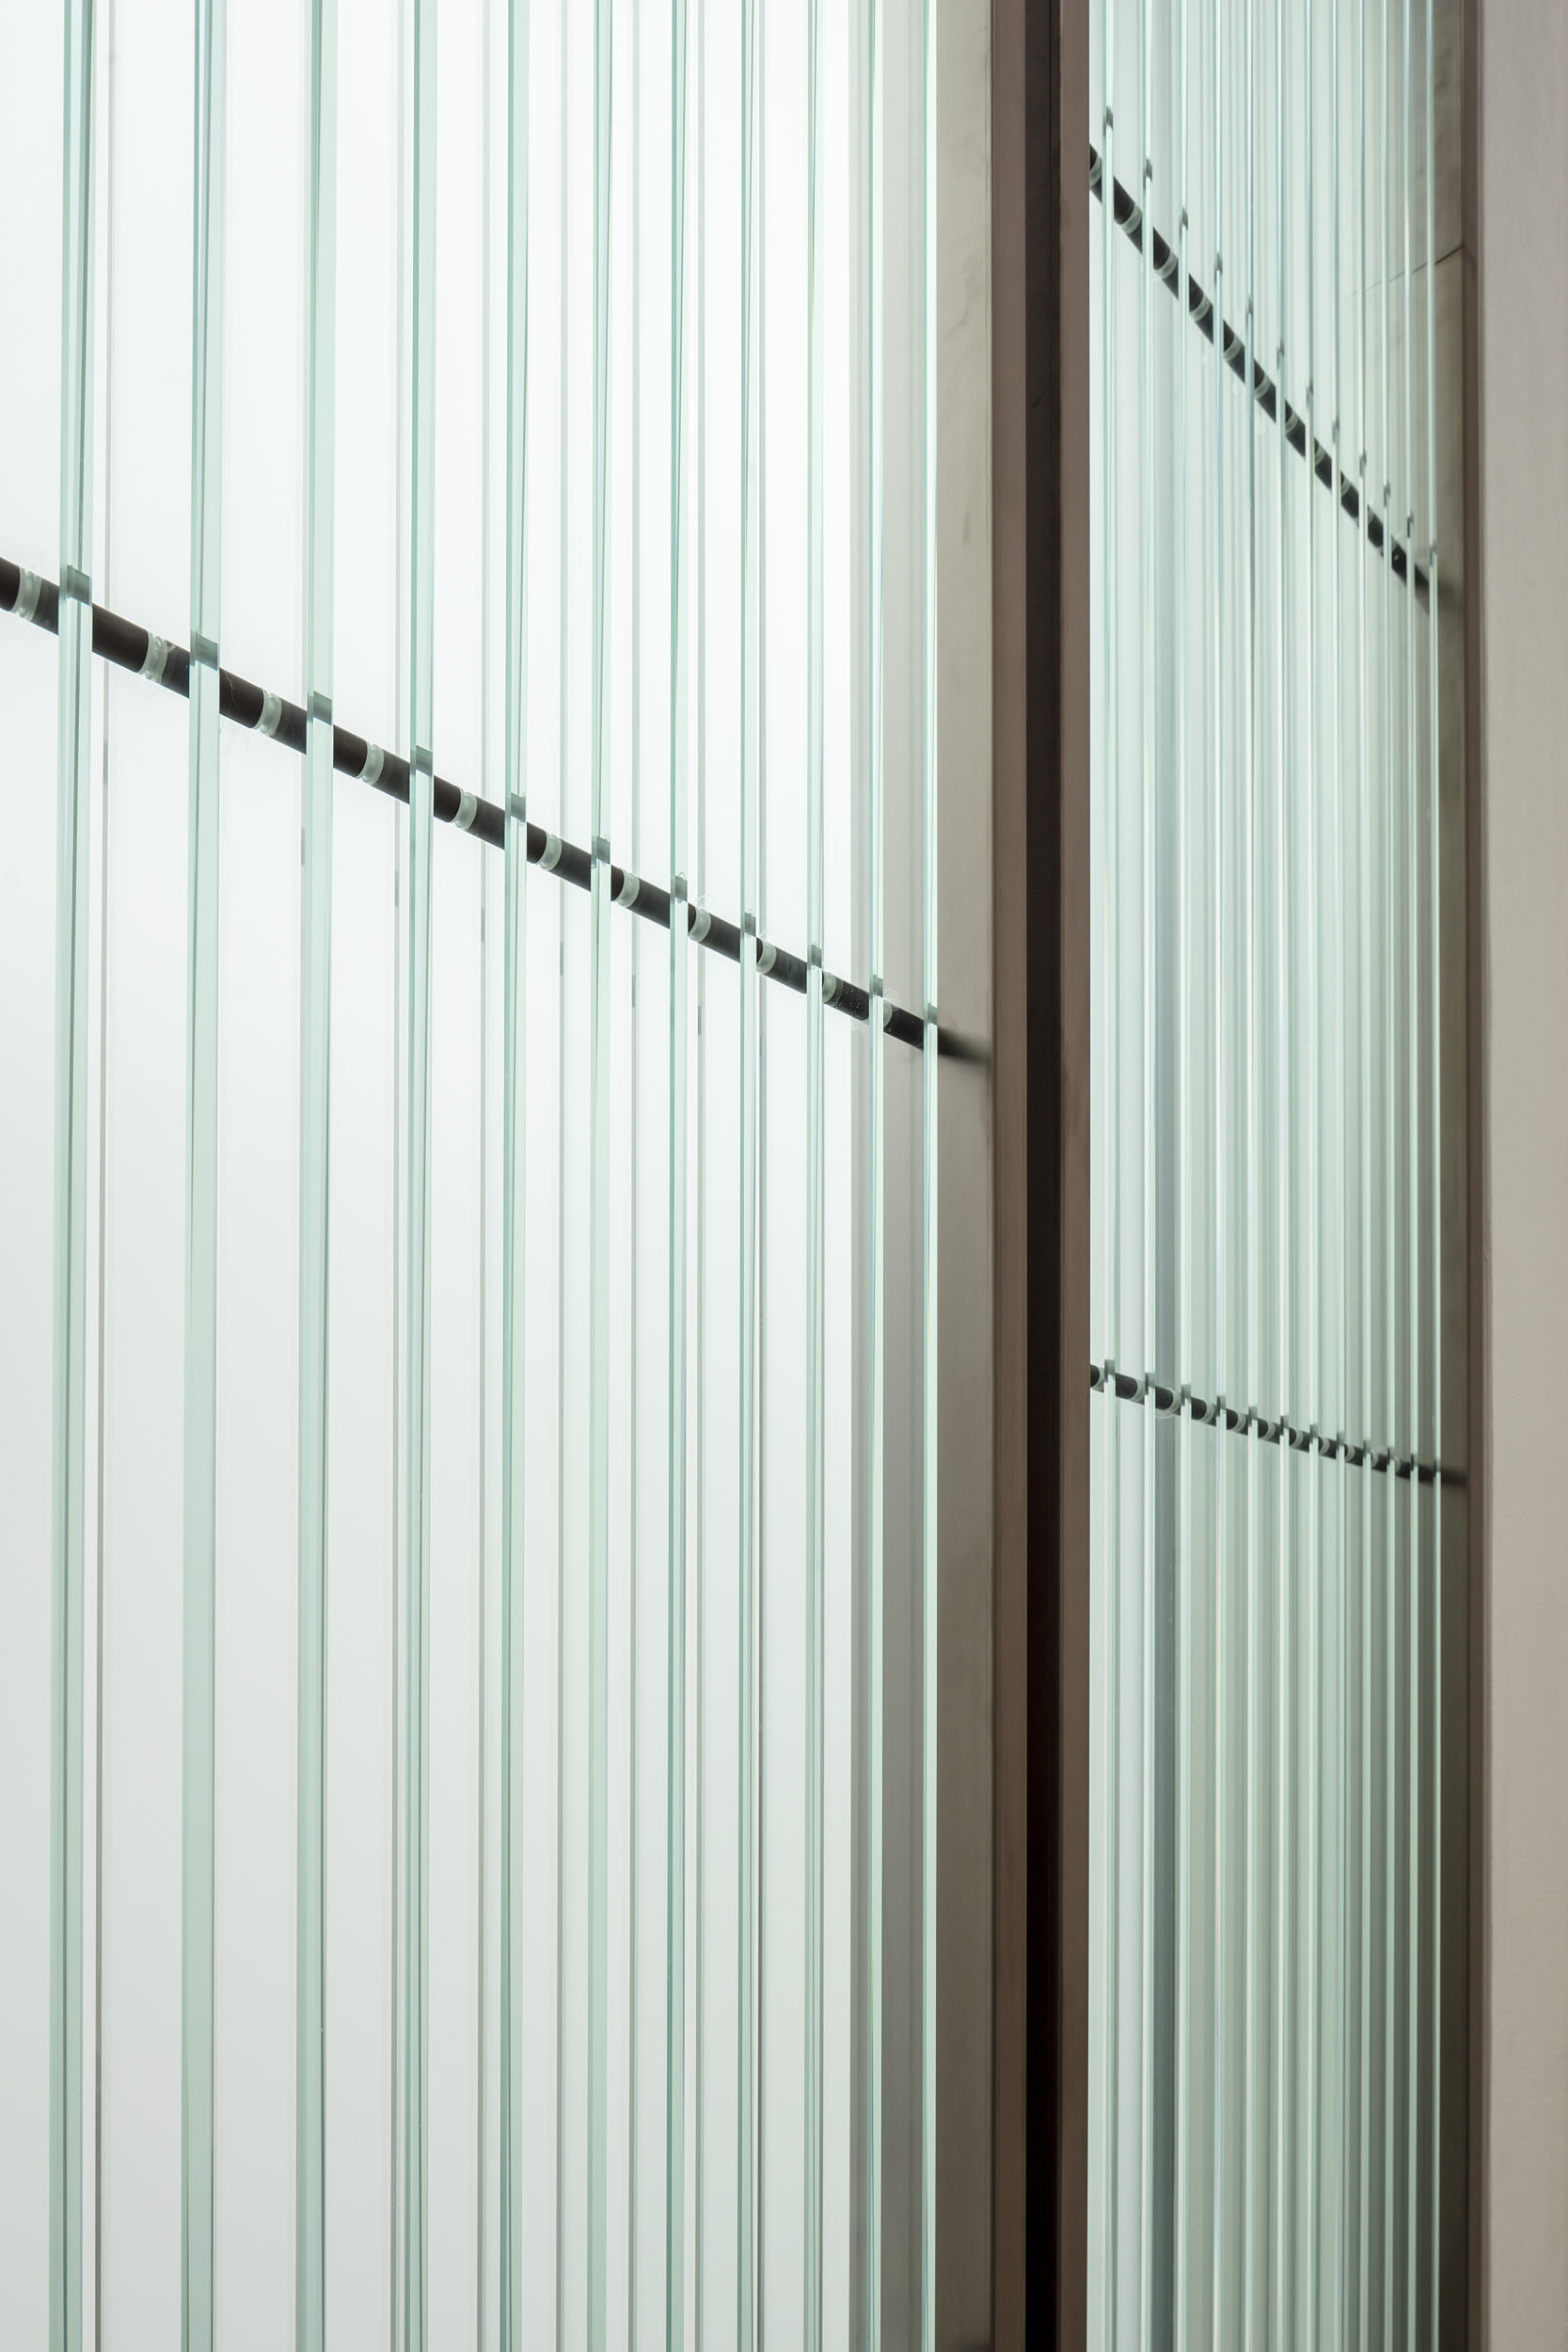 Glass fins and frosted glazing bringing light into the stair.